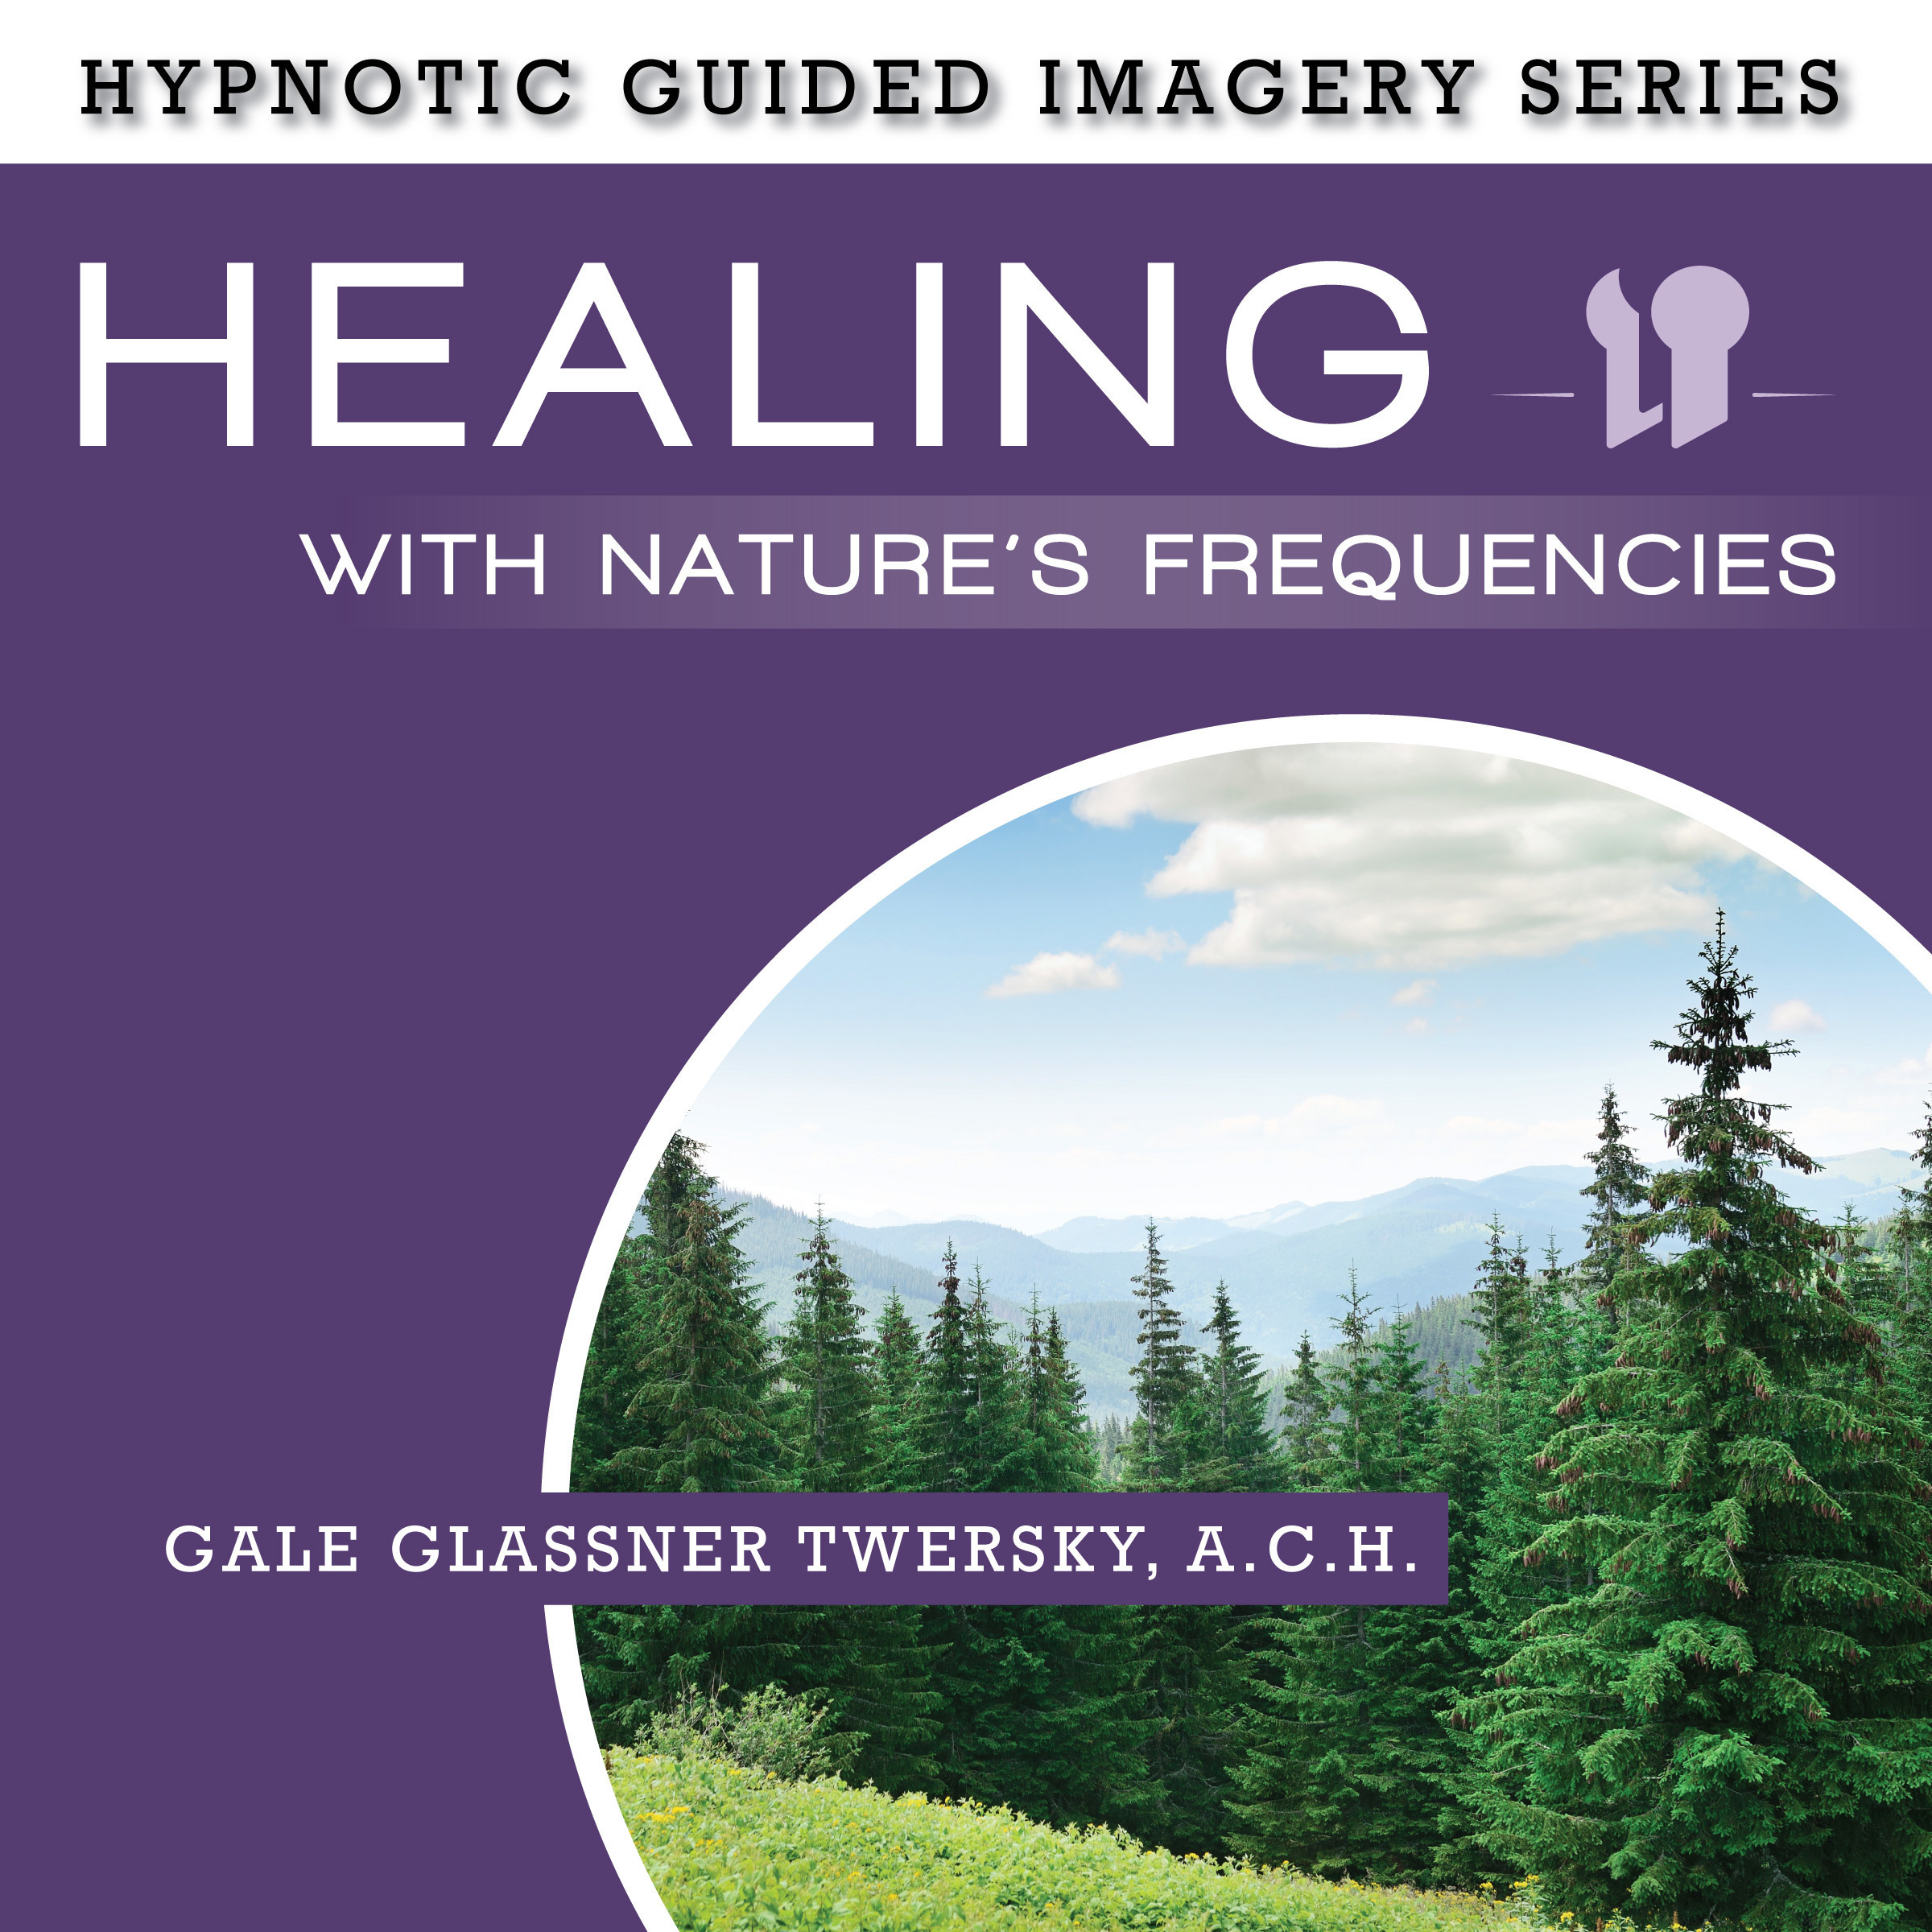 Printable Healing with Nature's Frequencies: The Hypnotic Guided Imagery Series Audiobook Cover Art